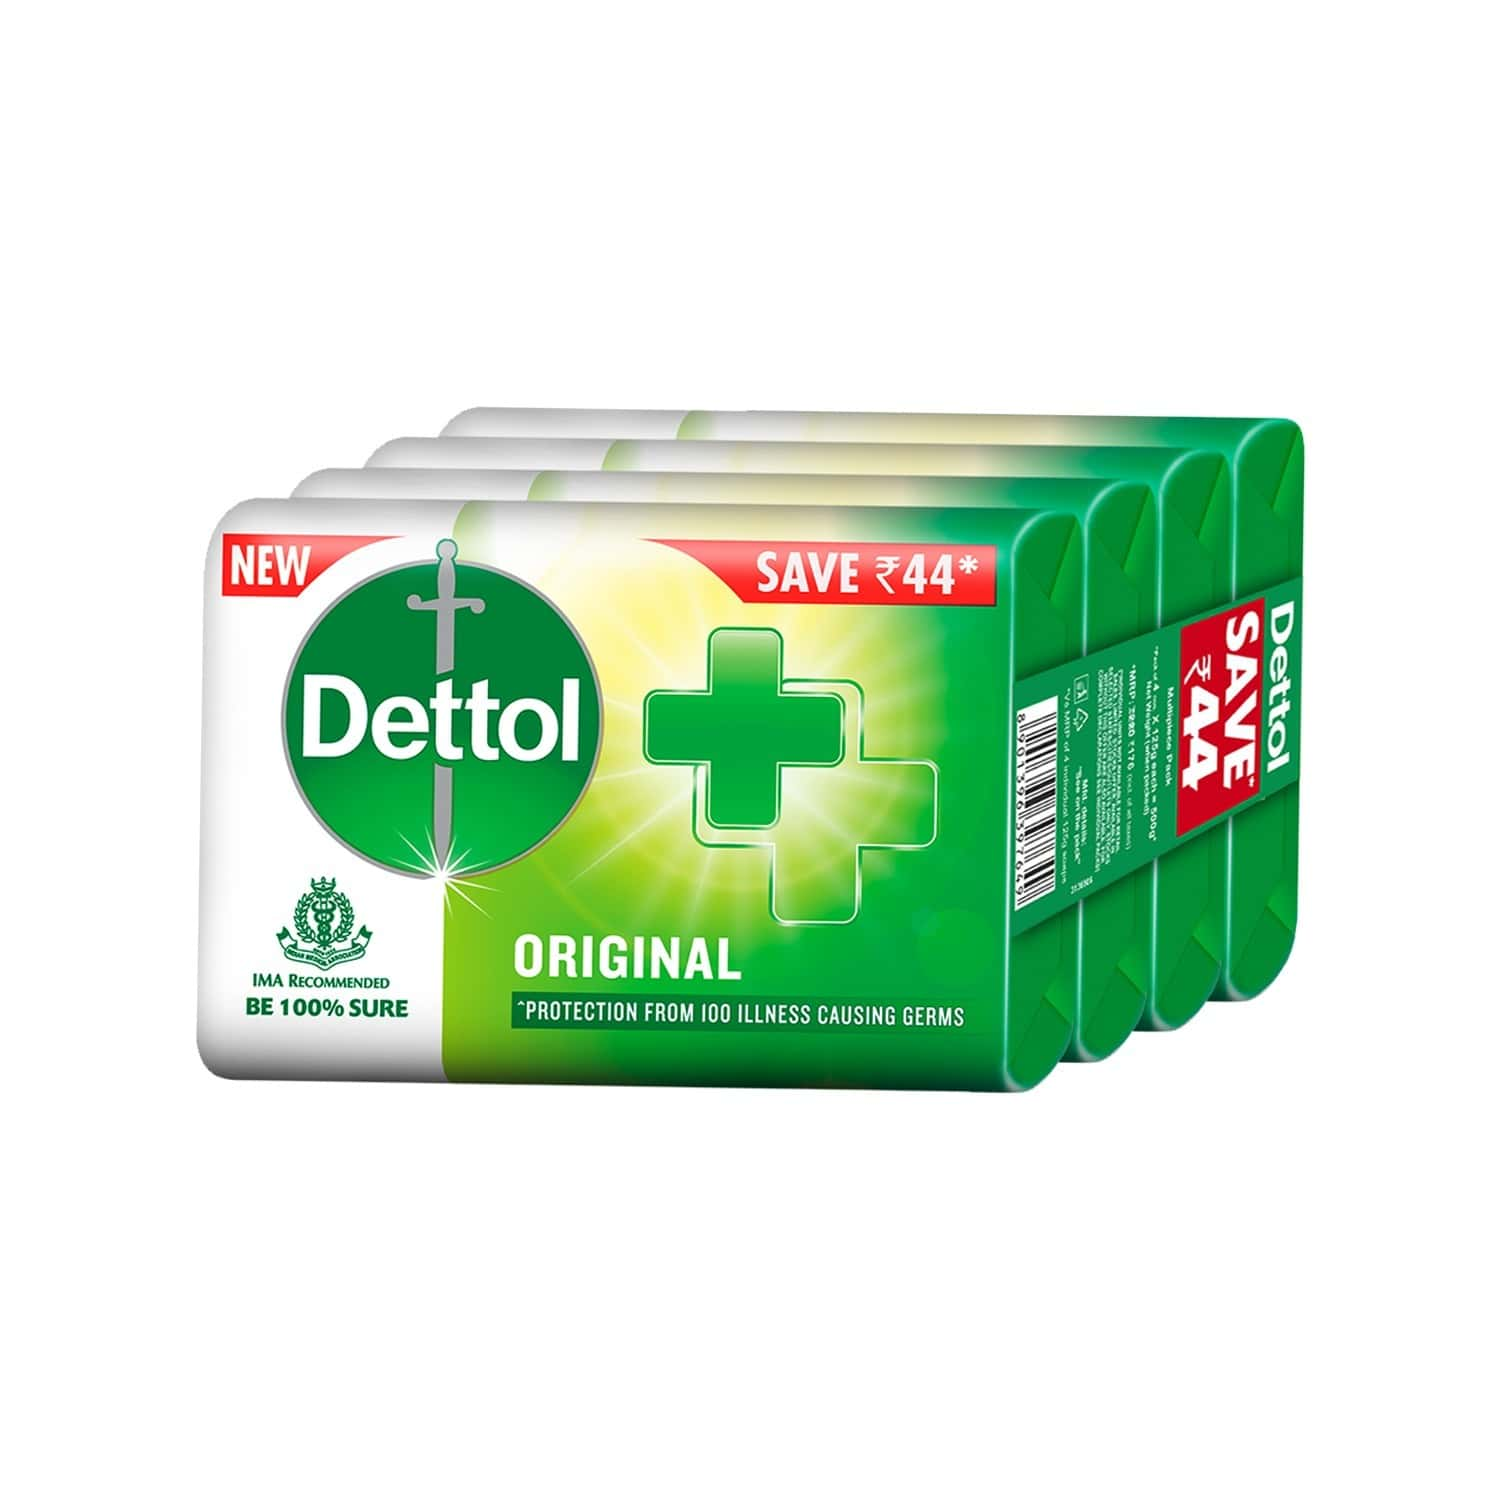 Dettol Original Germ Protection (pack Of 4) Soap Box Of 125 G